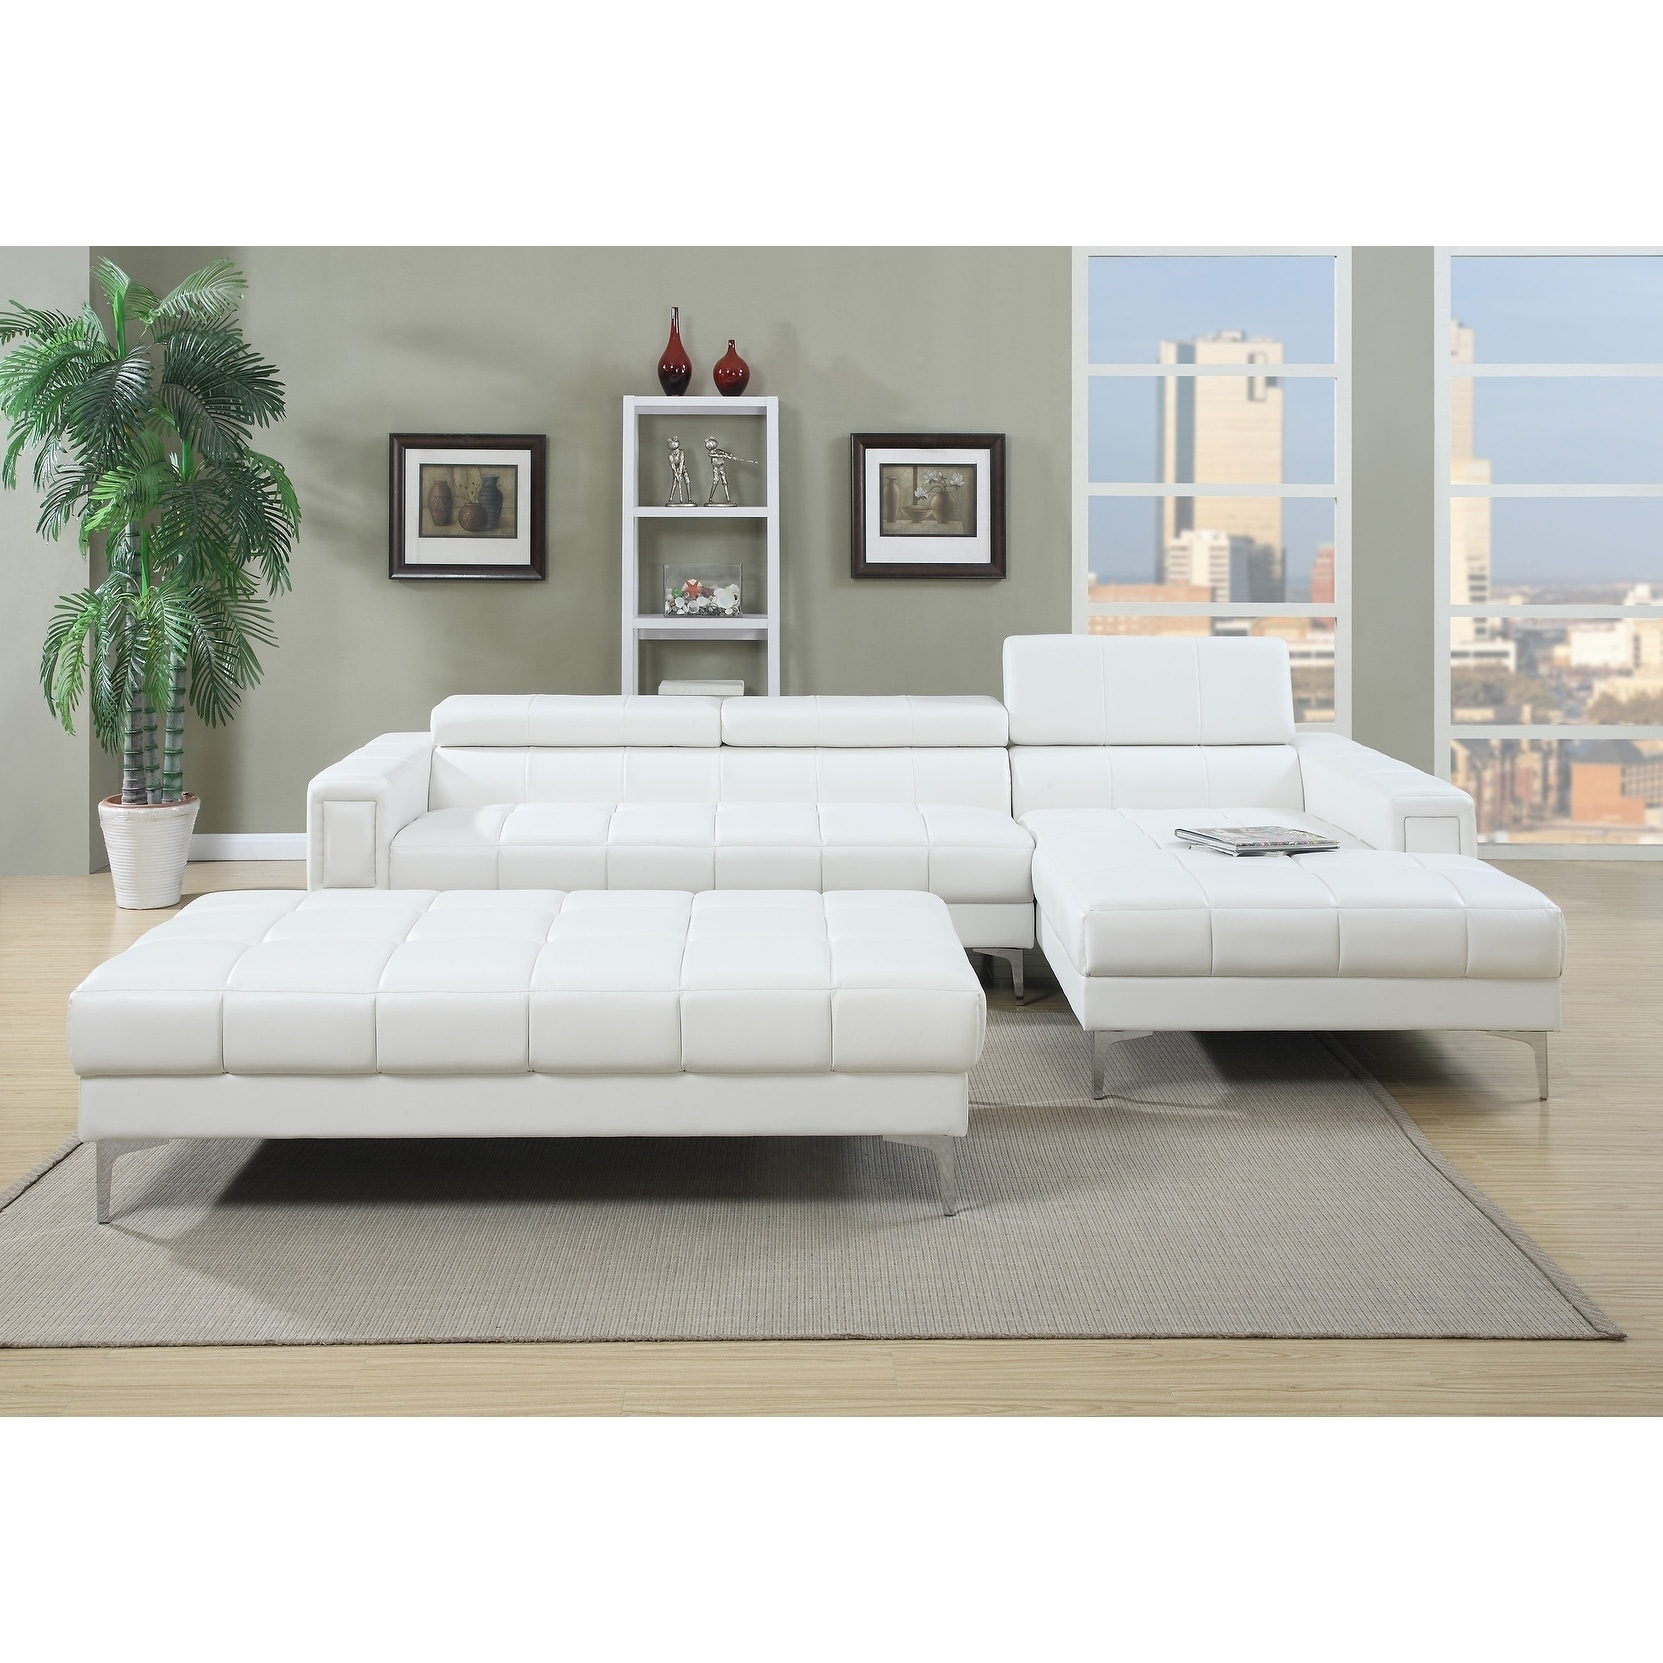 Miraculous Bobkona Hayden Bonded Leather 2 Pcs Sectional Sofa Loveseat With Adjustable Back Ottoman Not Included Pabps2019 Chair Design Images Pabps2019Com